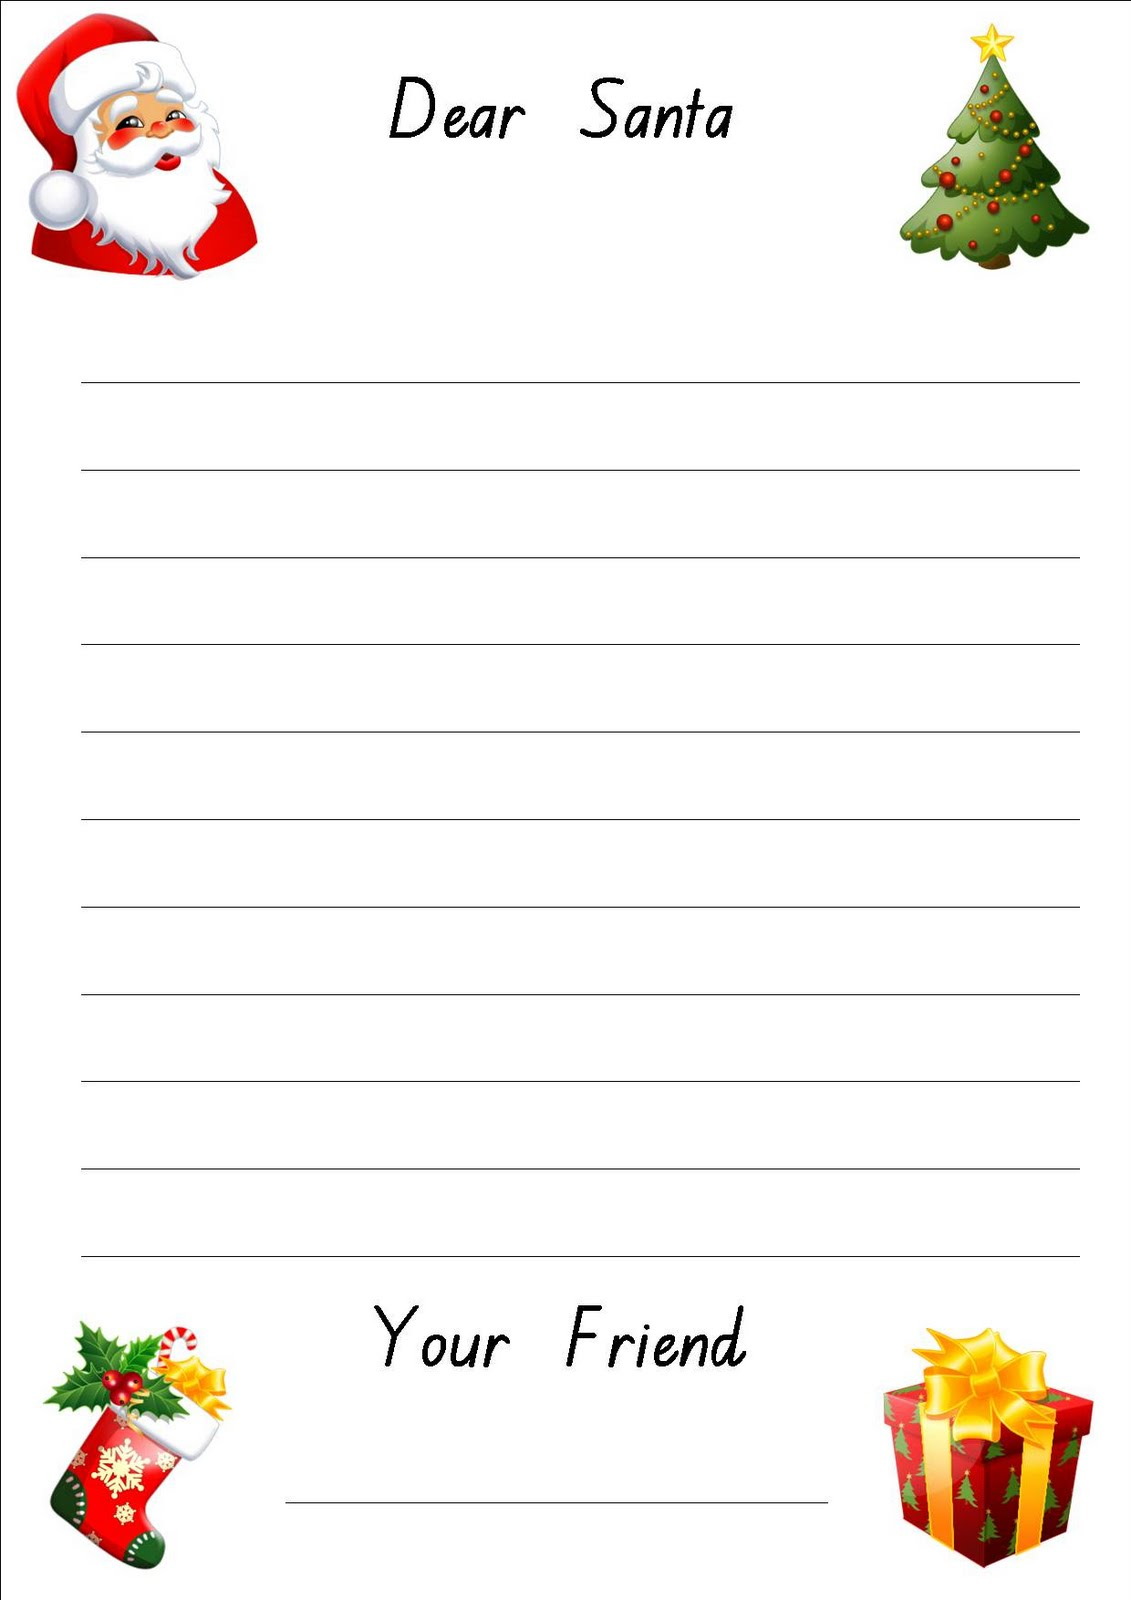 Resource image with regard to printable santa letter